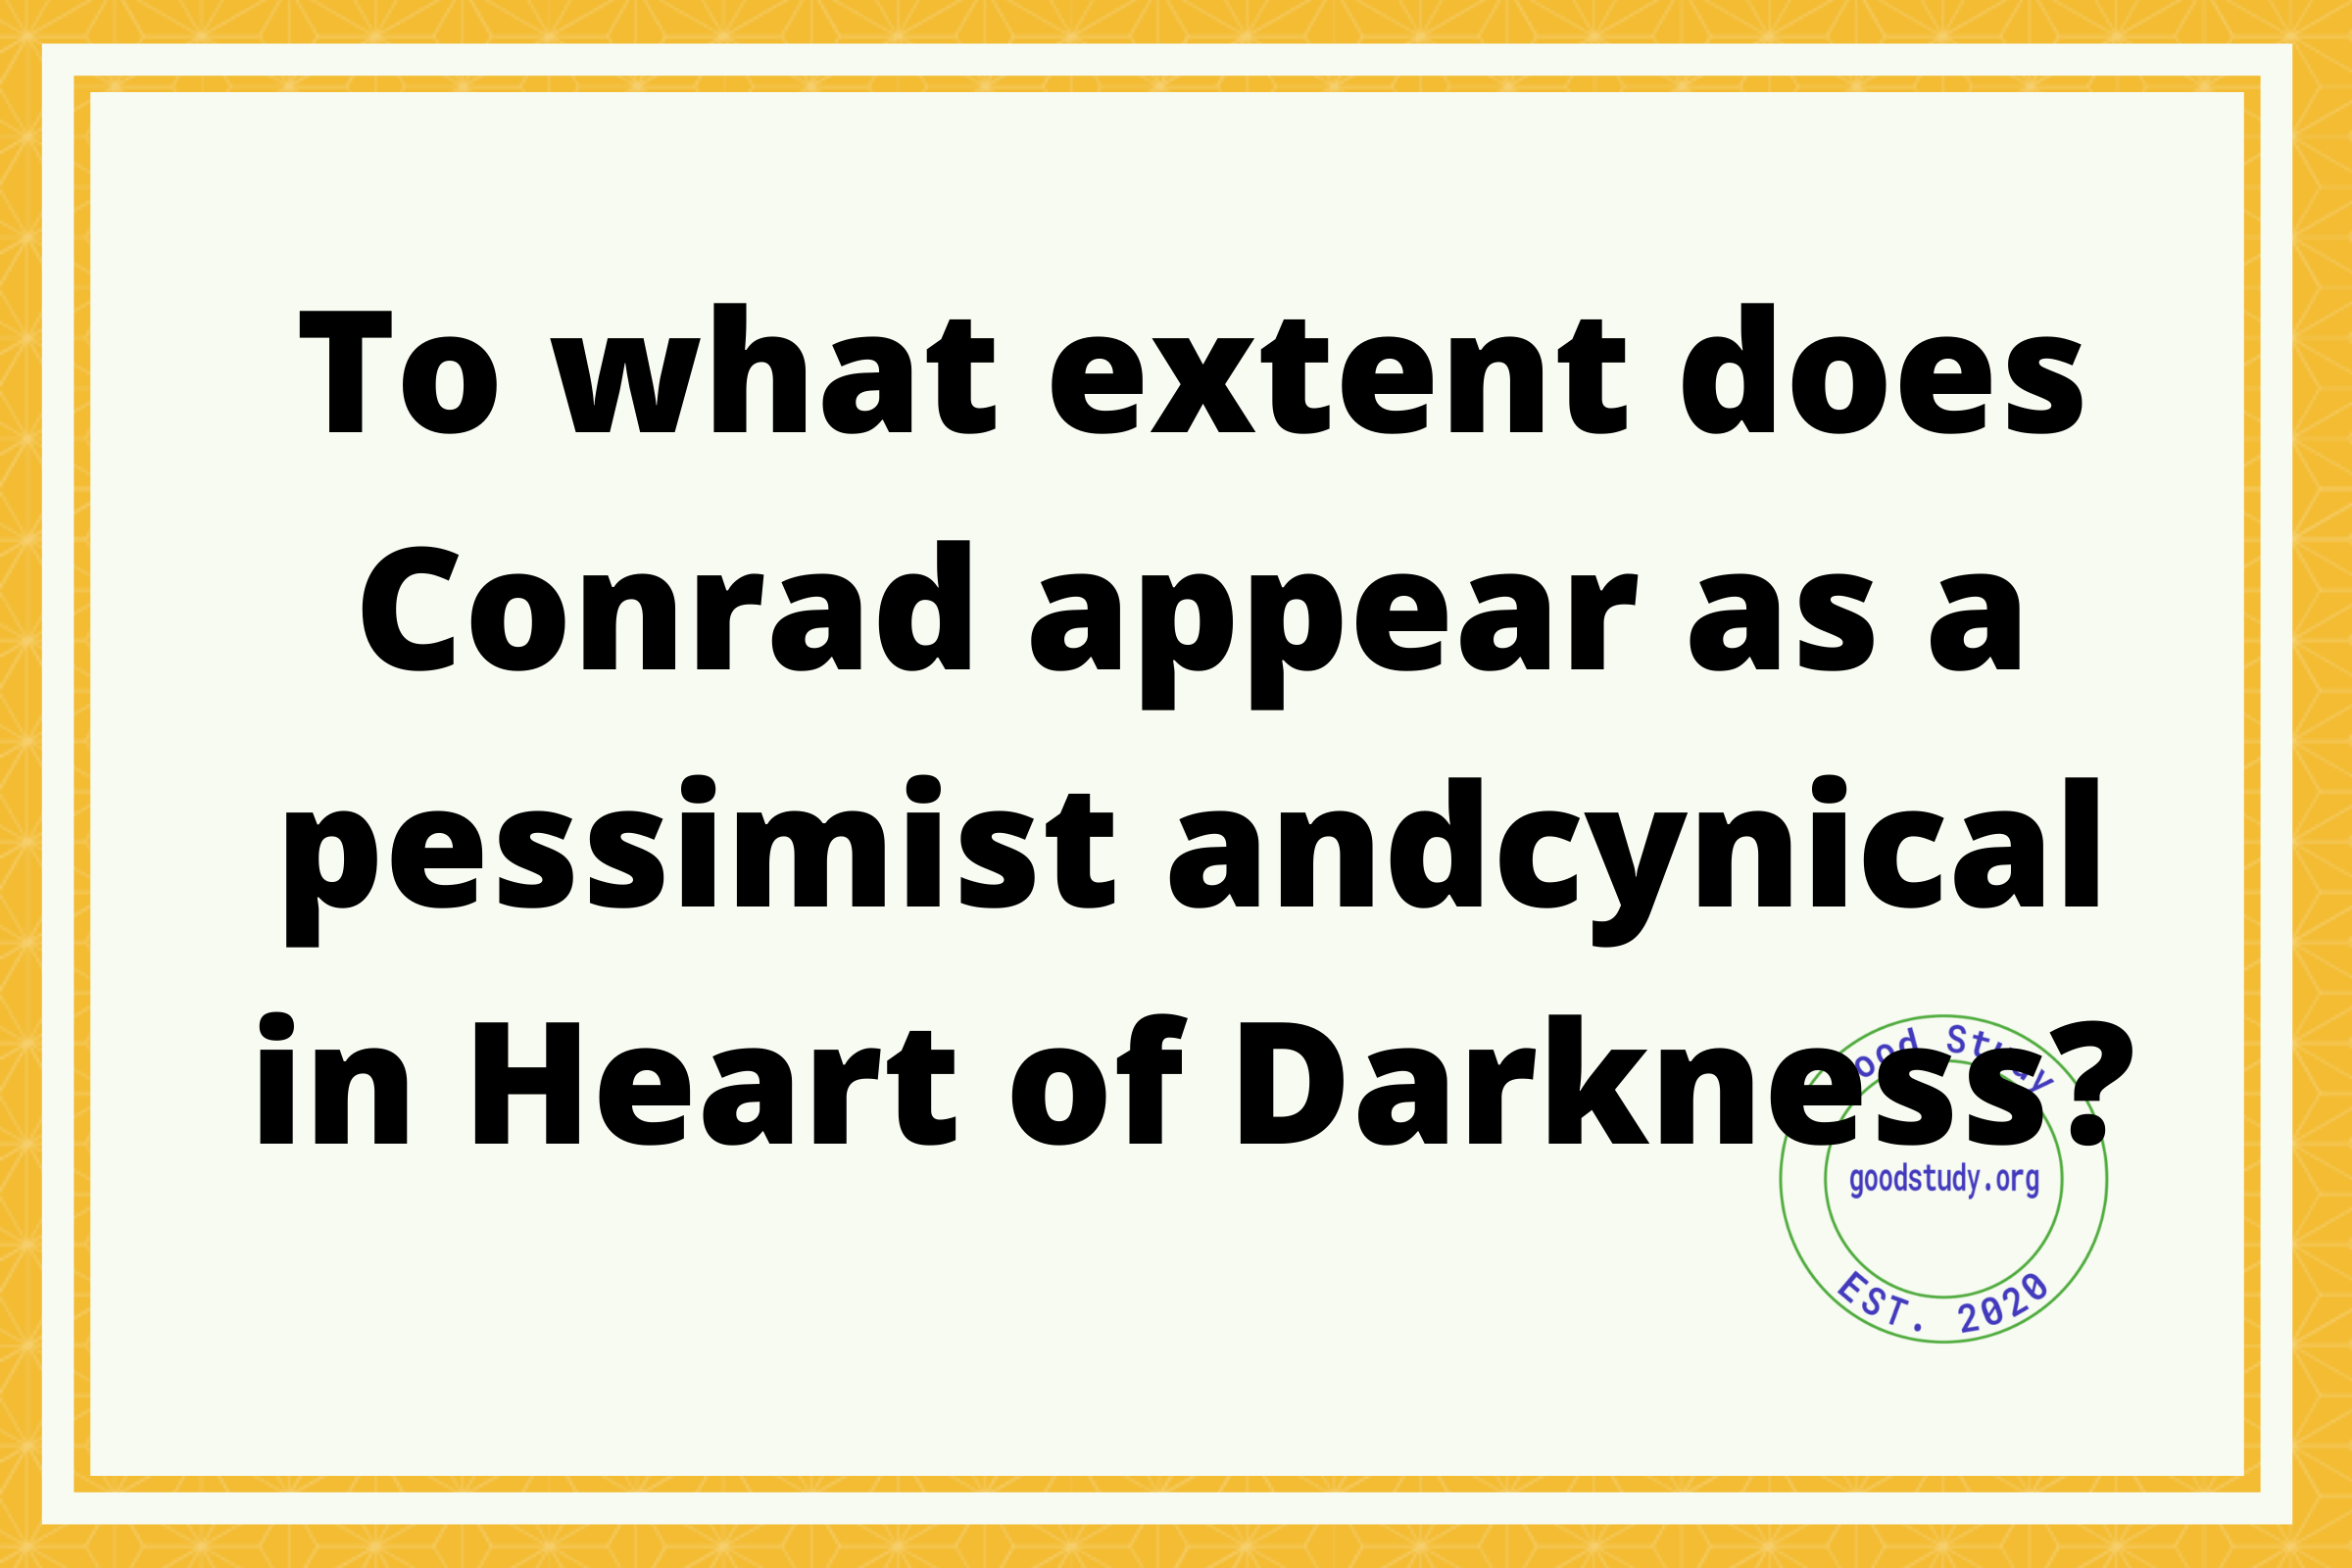 To what extent does Conrad appear as a pessimist and cynical in Heart of Darkness